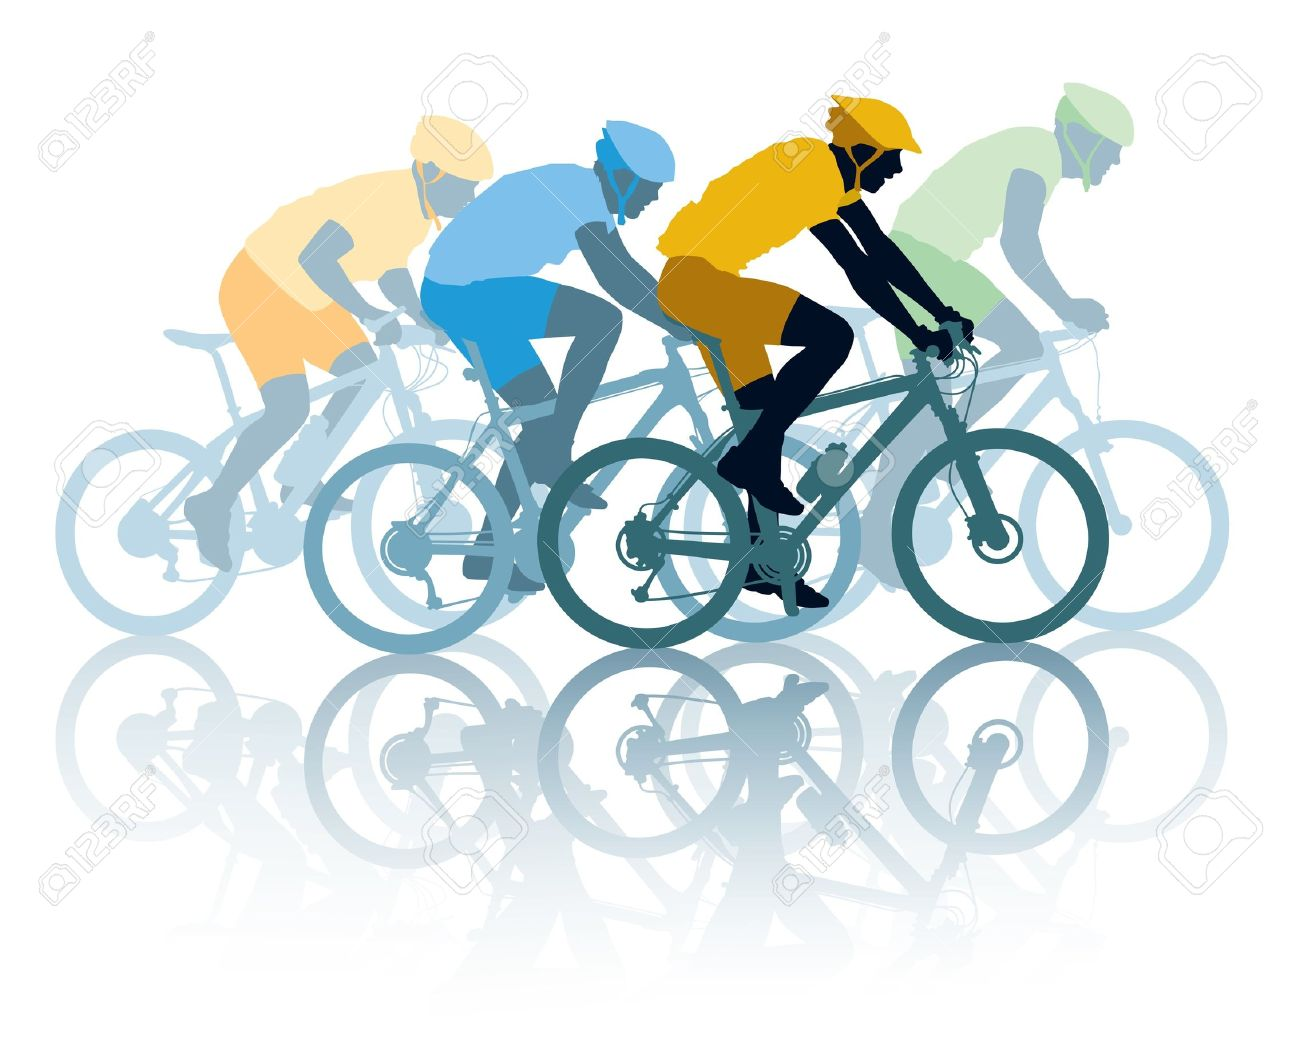 Cycle Race Clipart.